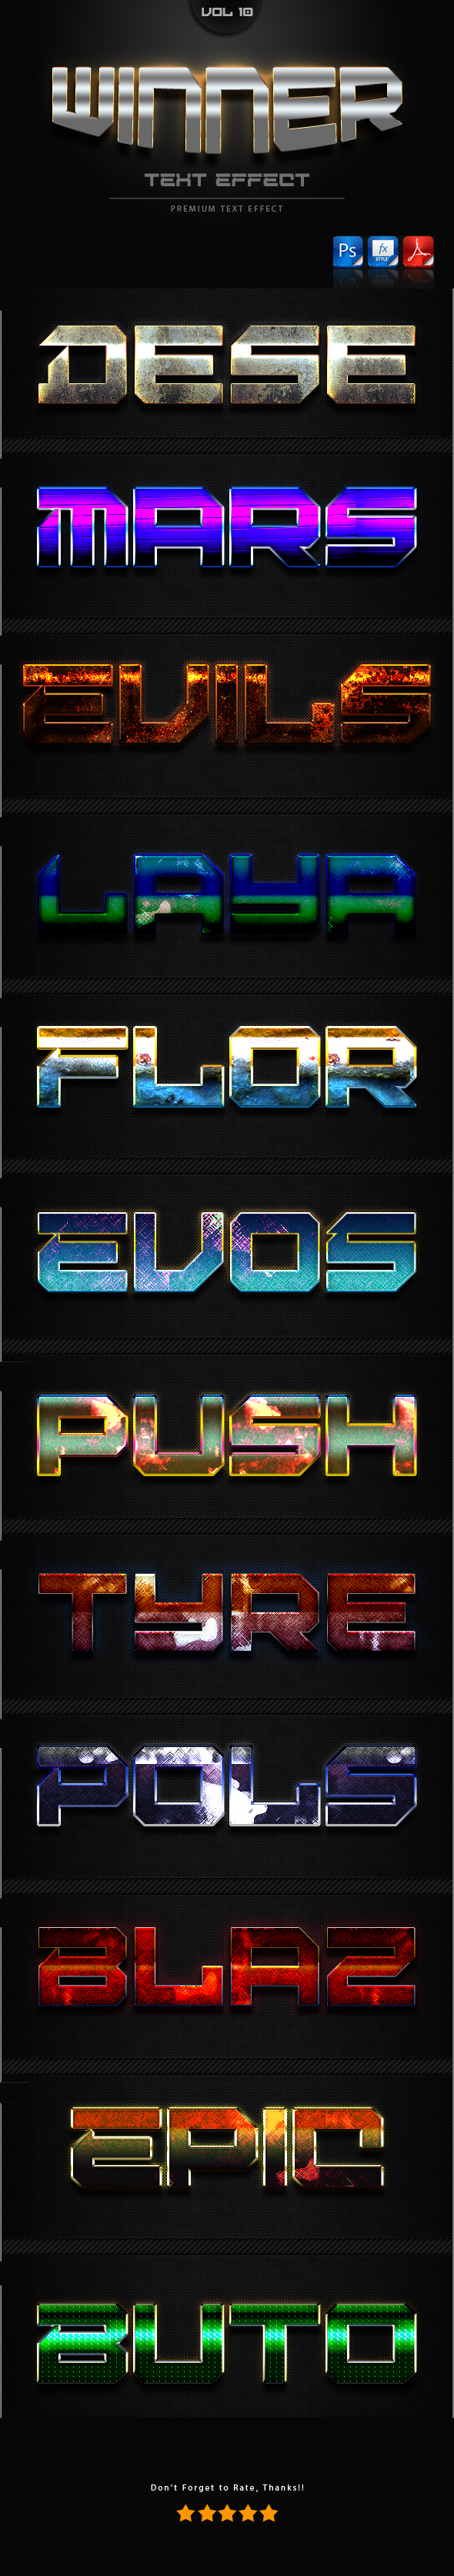 Winner Text Effect Styles Vol 10 - Text Effects Styles